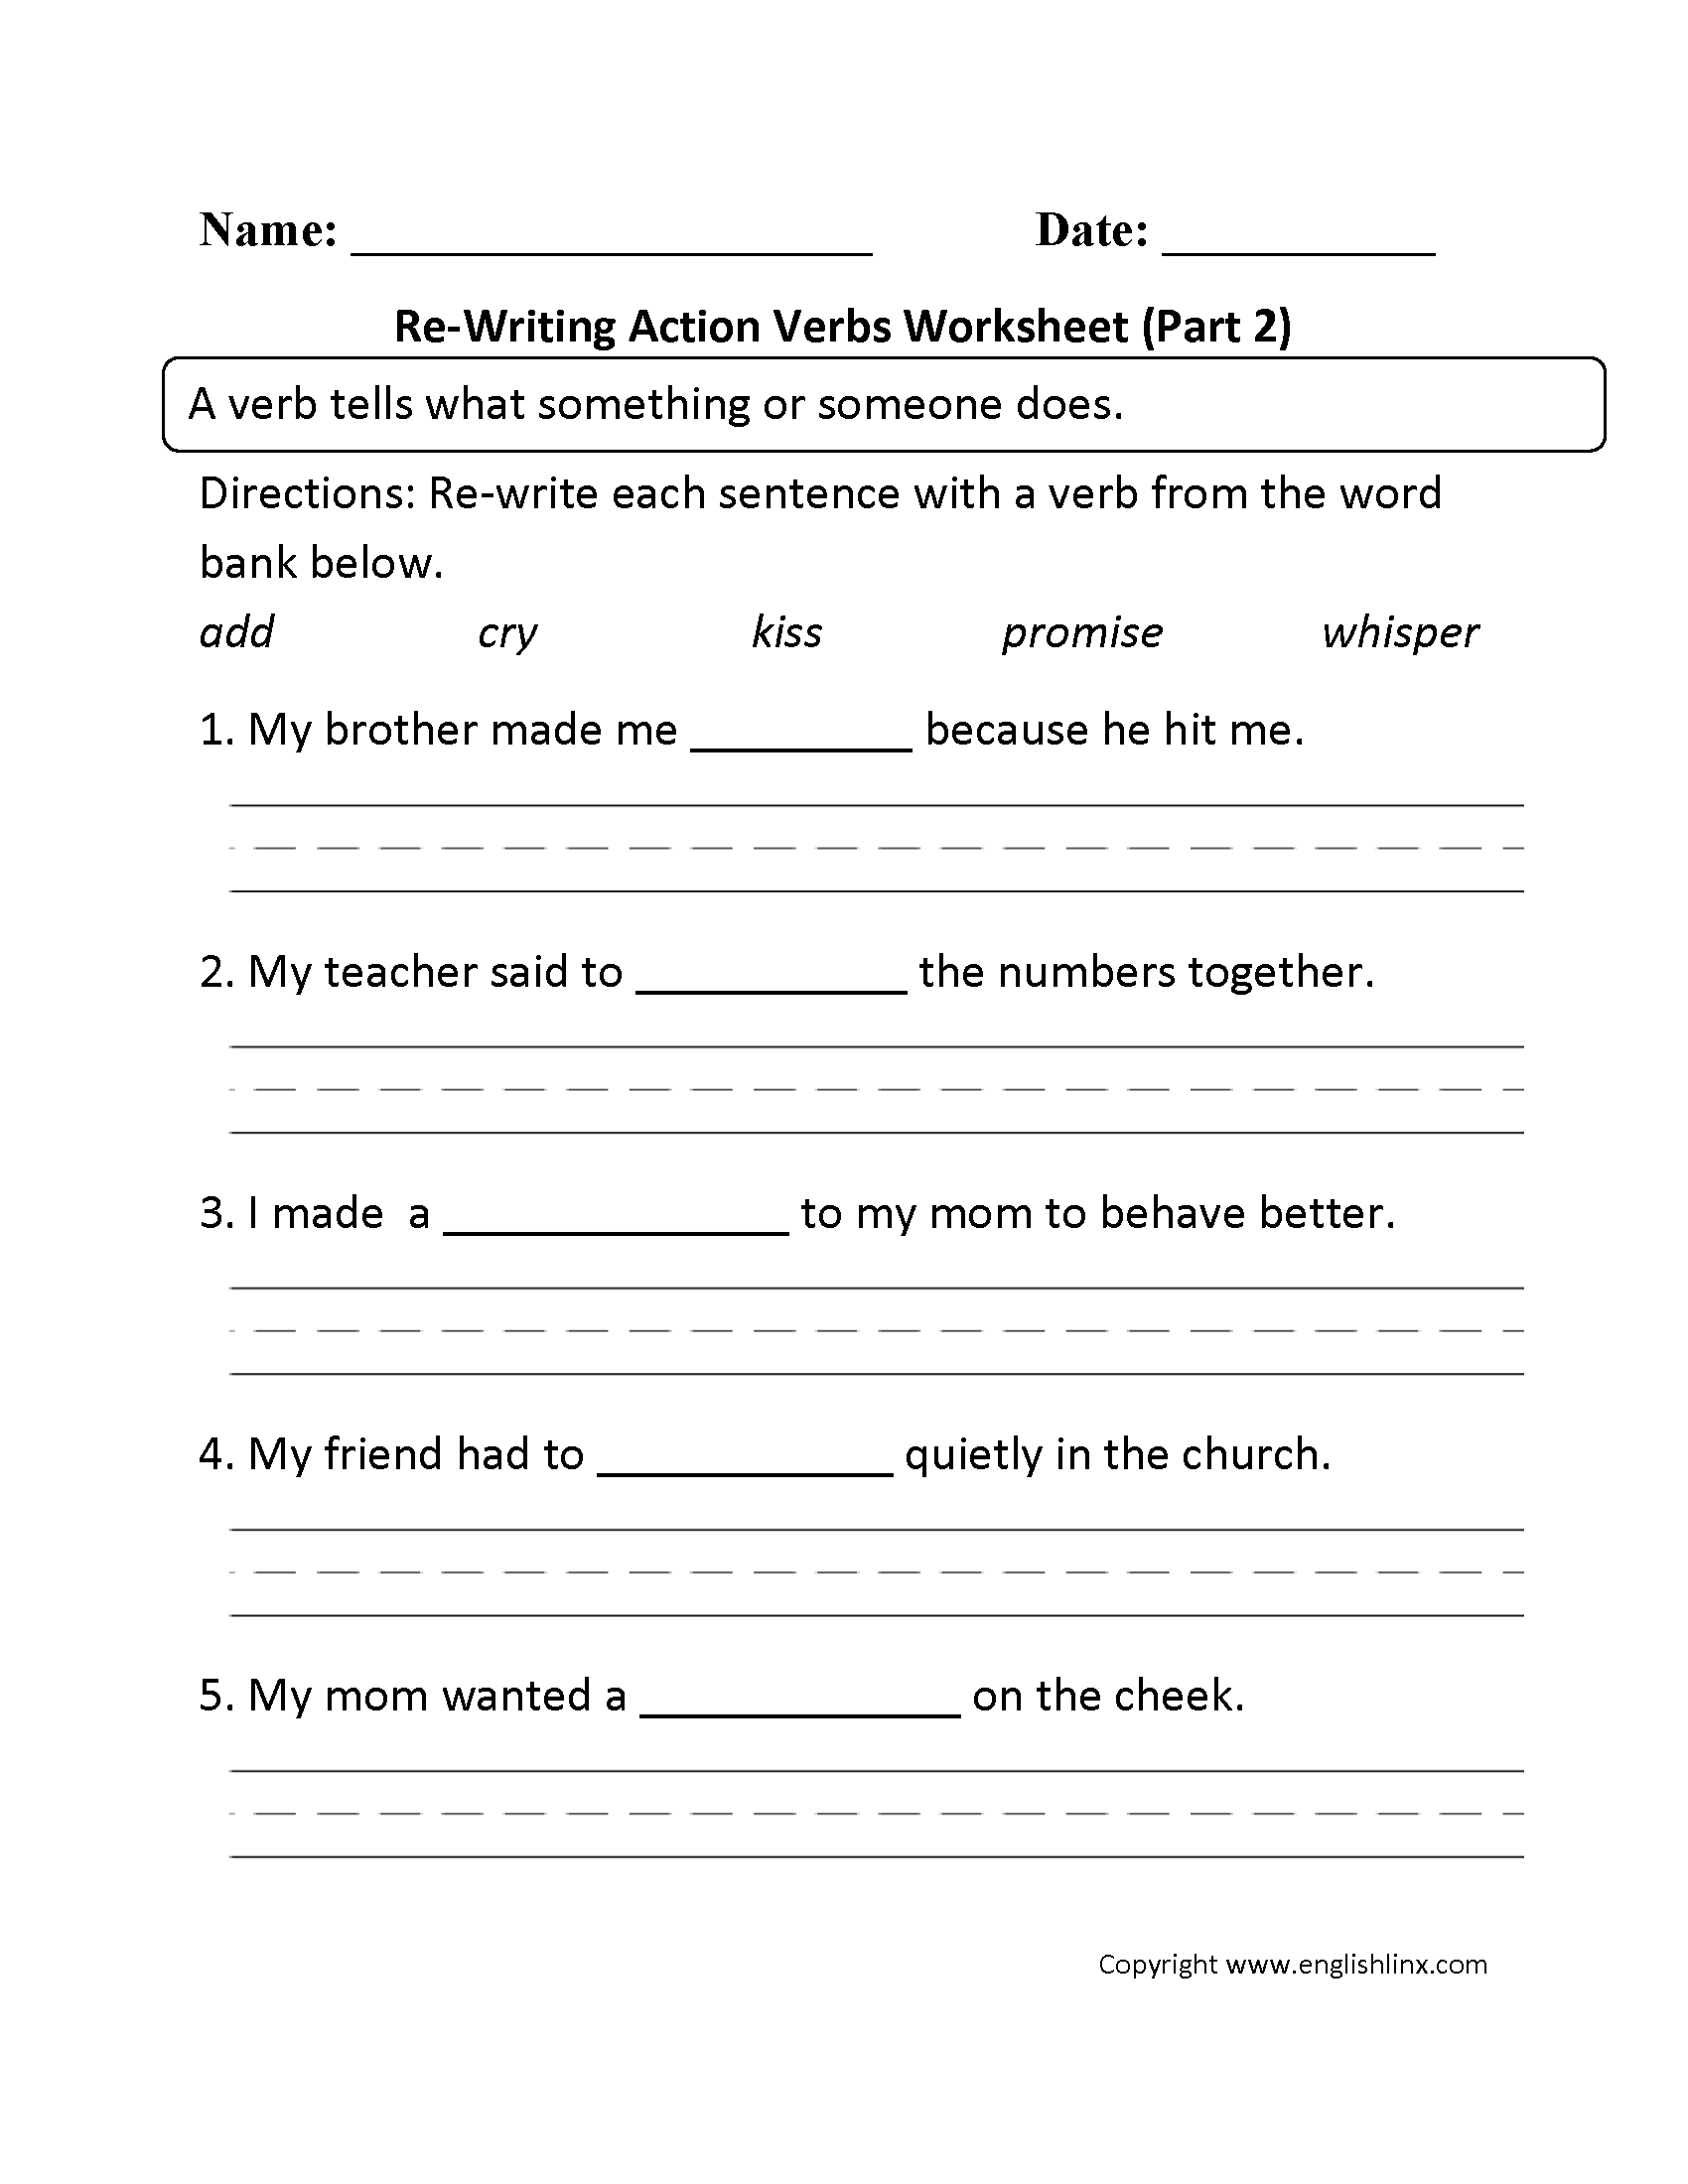 Worksheet Worksheets On Verbs For Grade 2 verbs worksheets action worksheet part 2